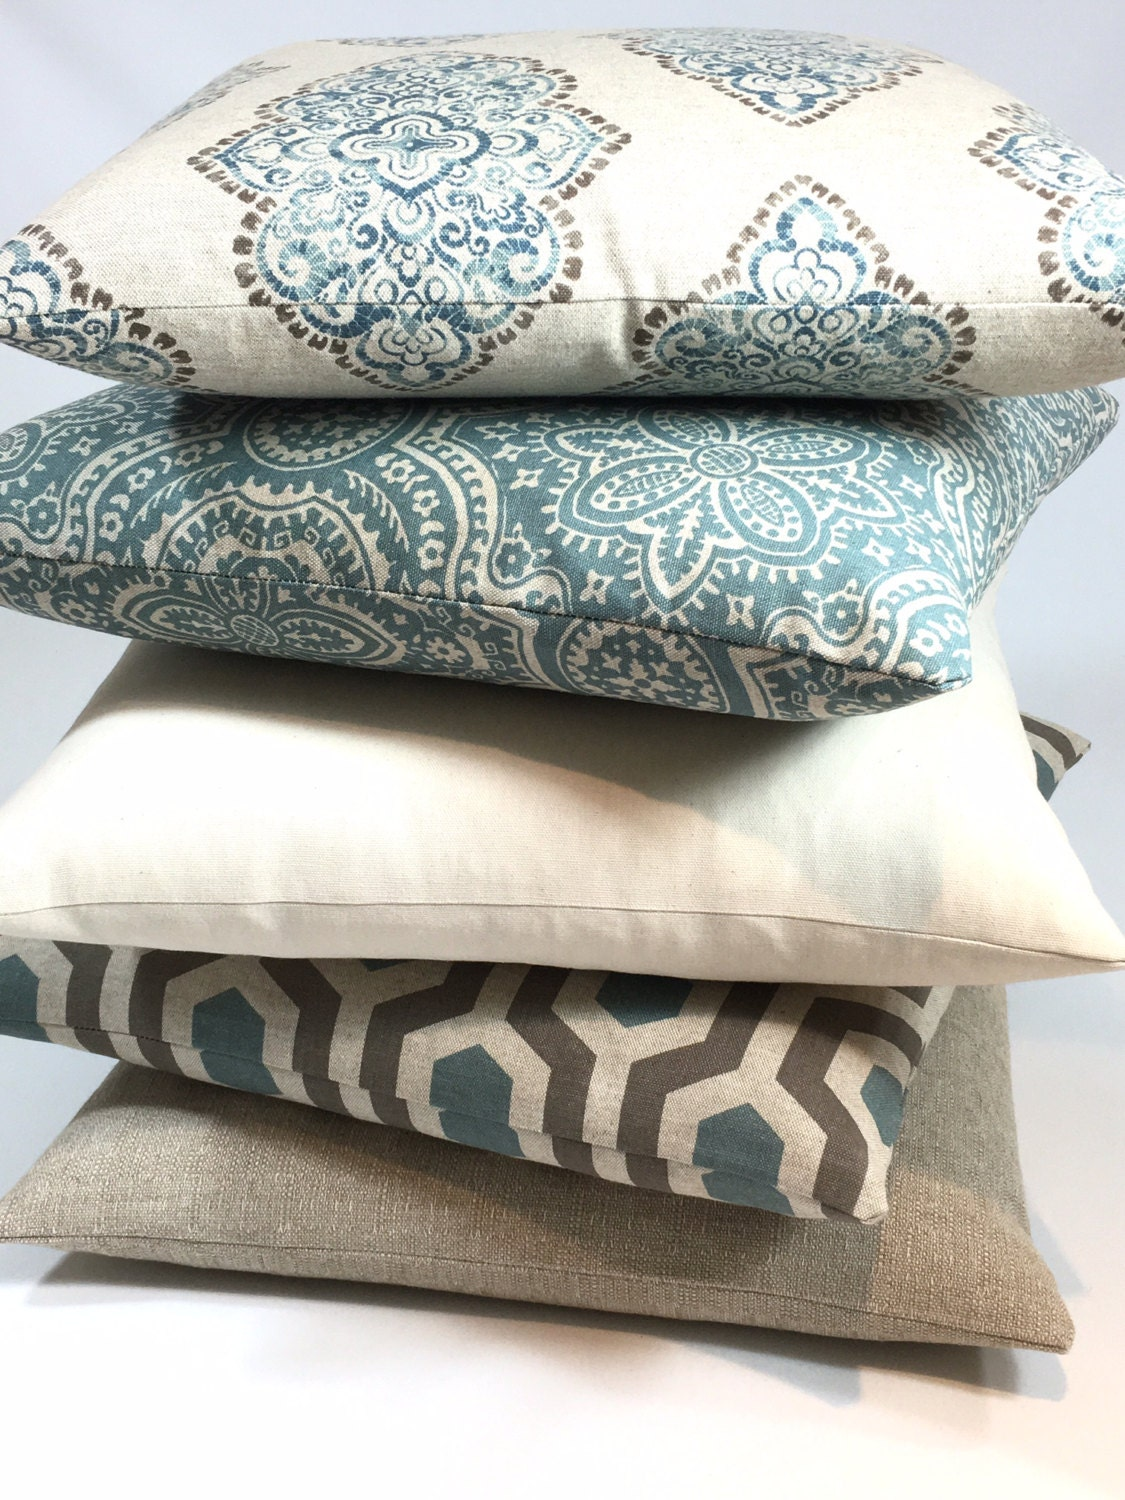 decorative pillow covers blue tan brown beige white. Black Bedroom Furniture Sets. Home Design Ideas